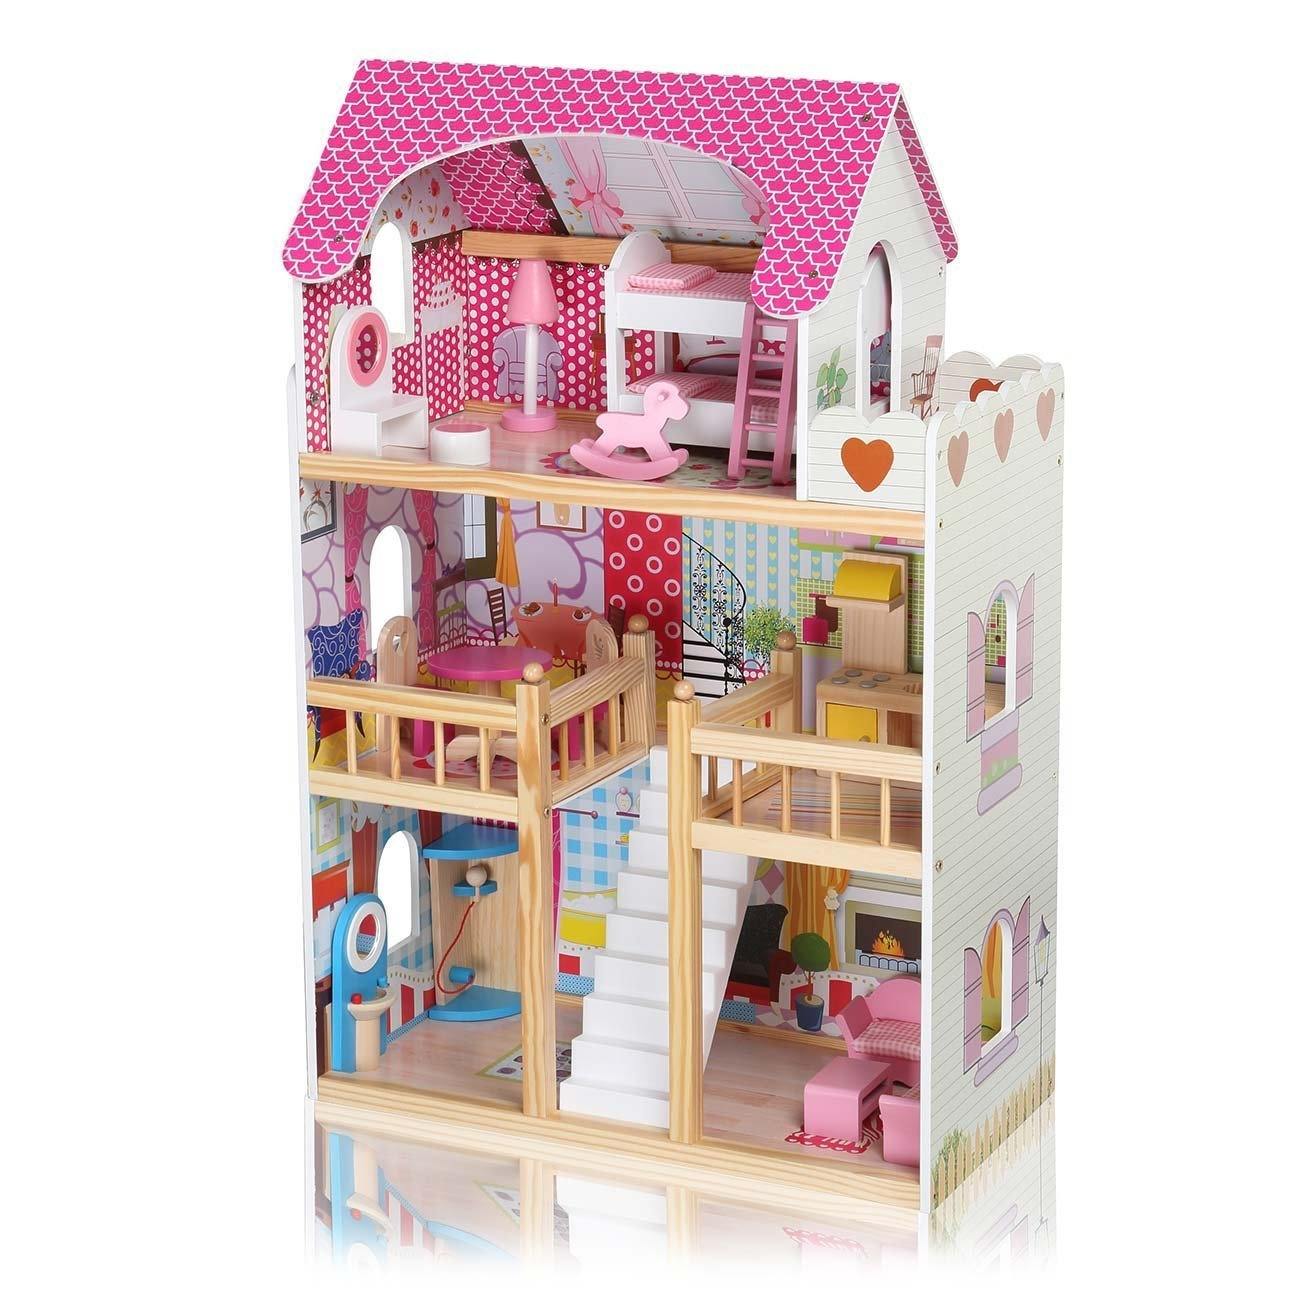 Baby Vivo Wooden Kids Doll House Dollhouse Staircase Barbie Dolls Furniture Cottage Children Toys Accessories Miniature Rosalie